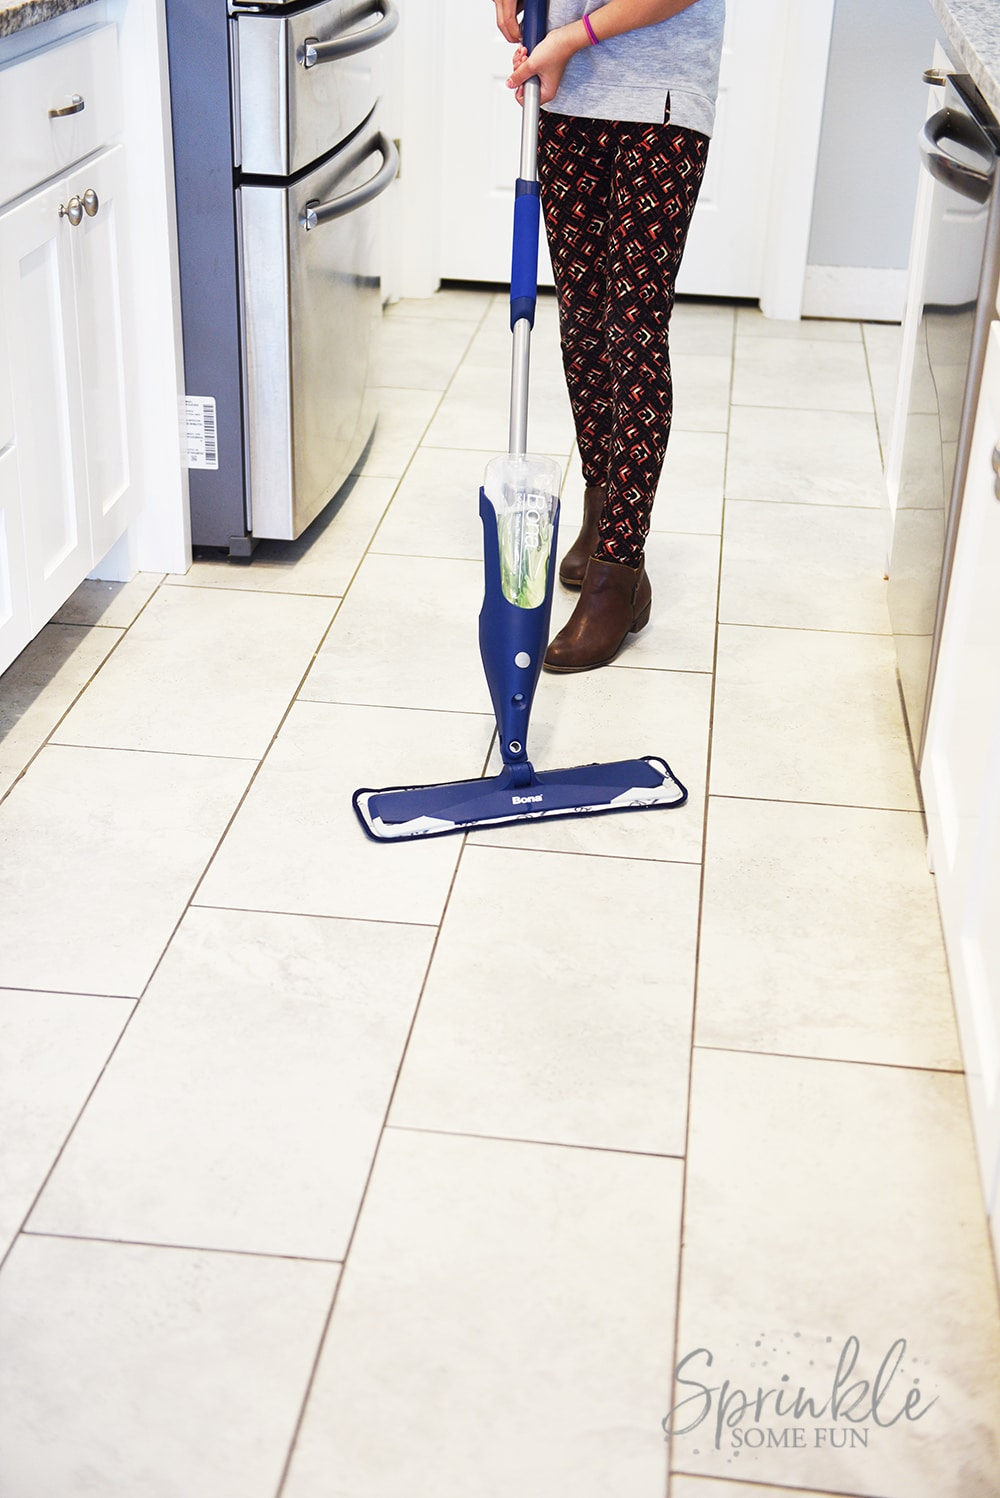 Easy Way To Clean Tile Flooring ⋆ Sprinkle Some Fun